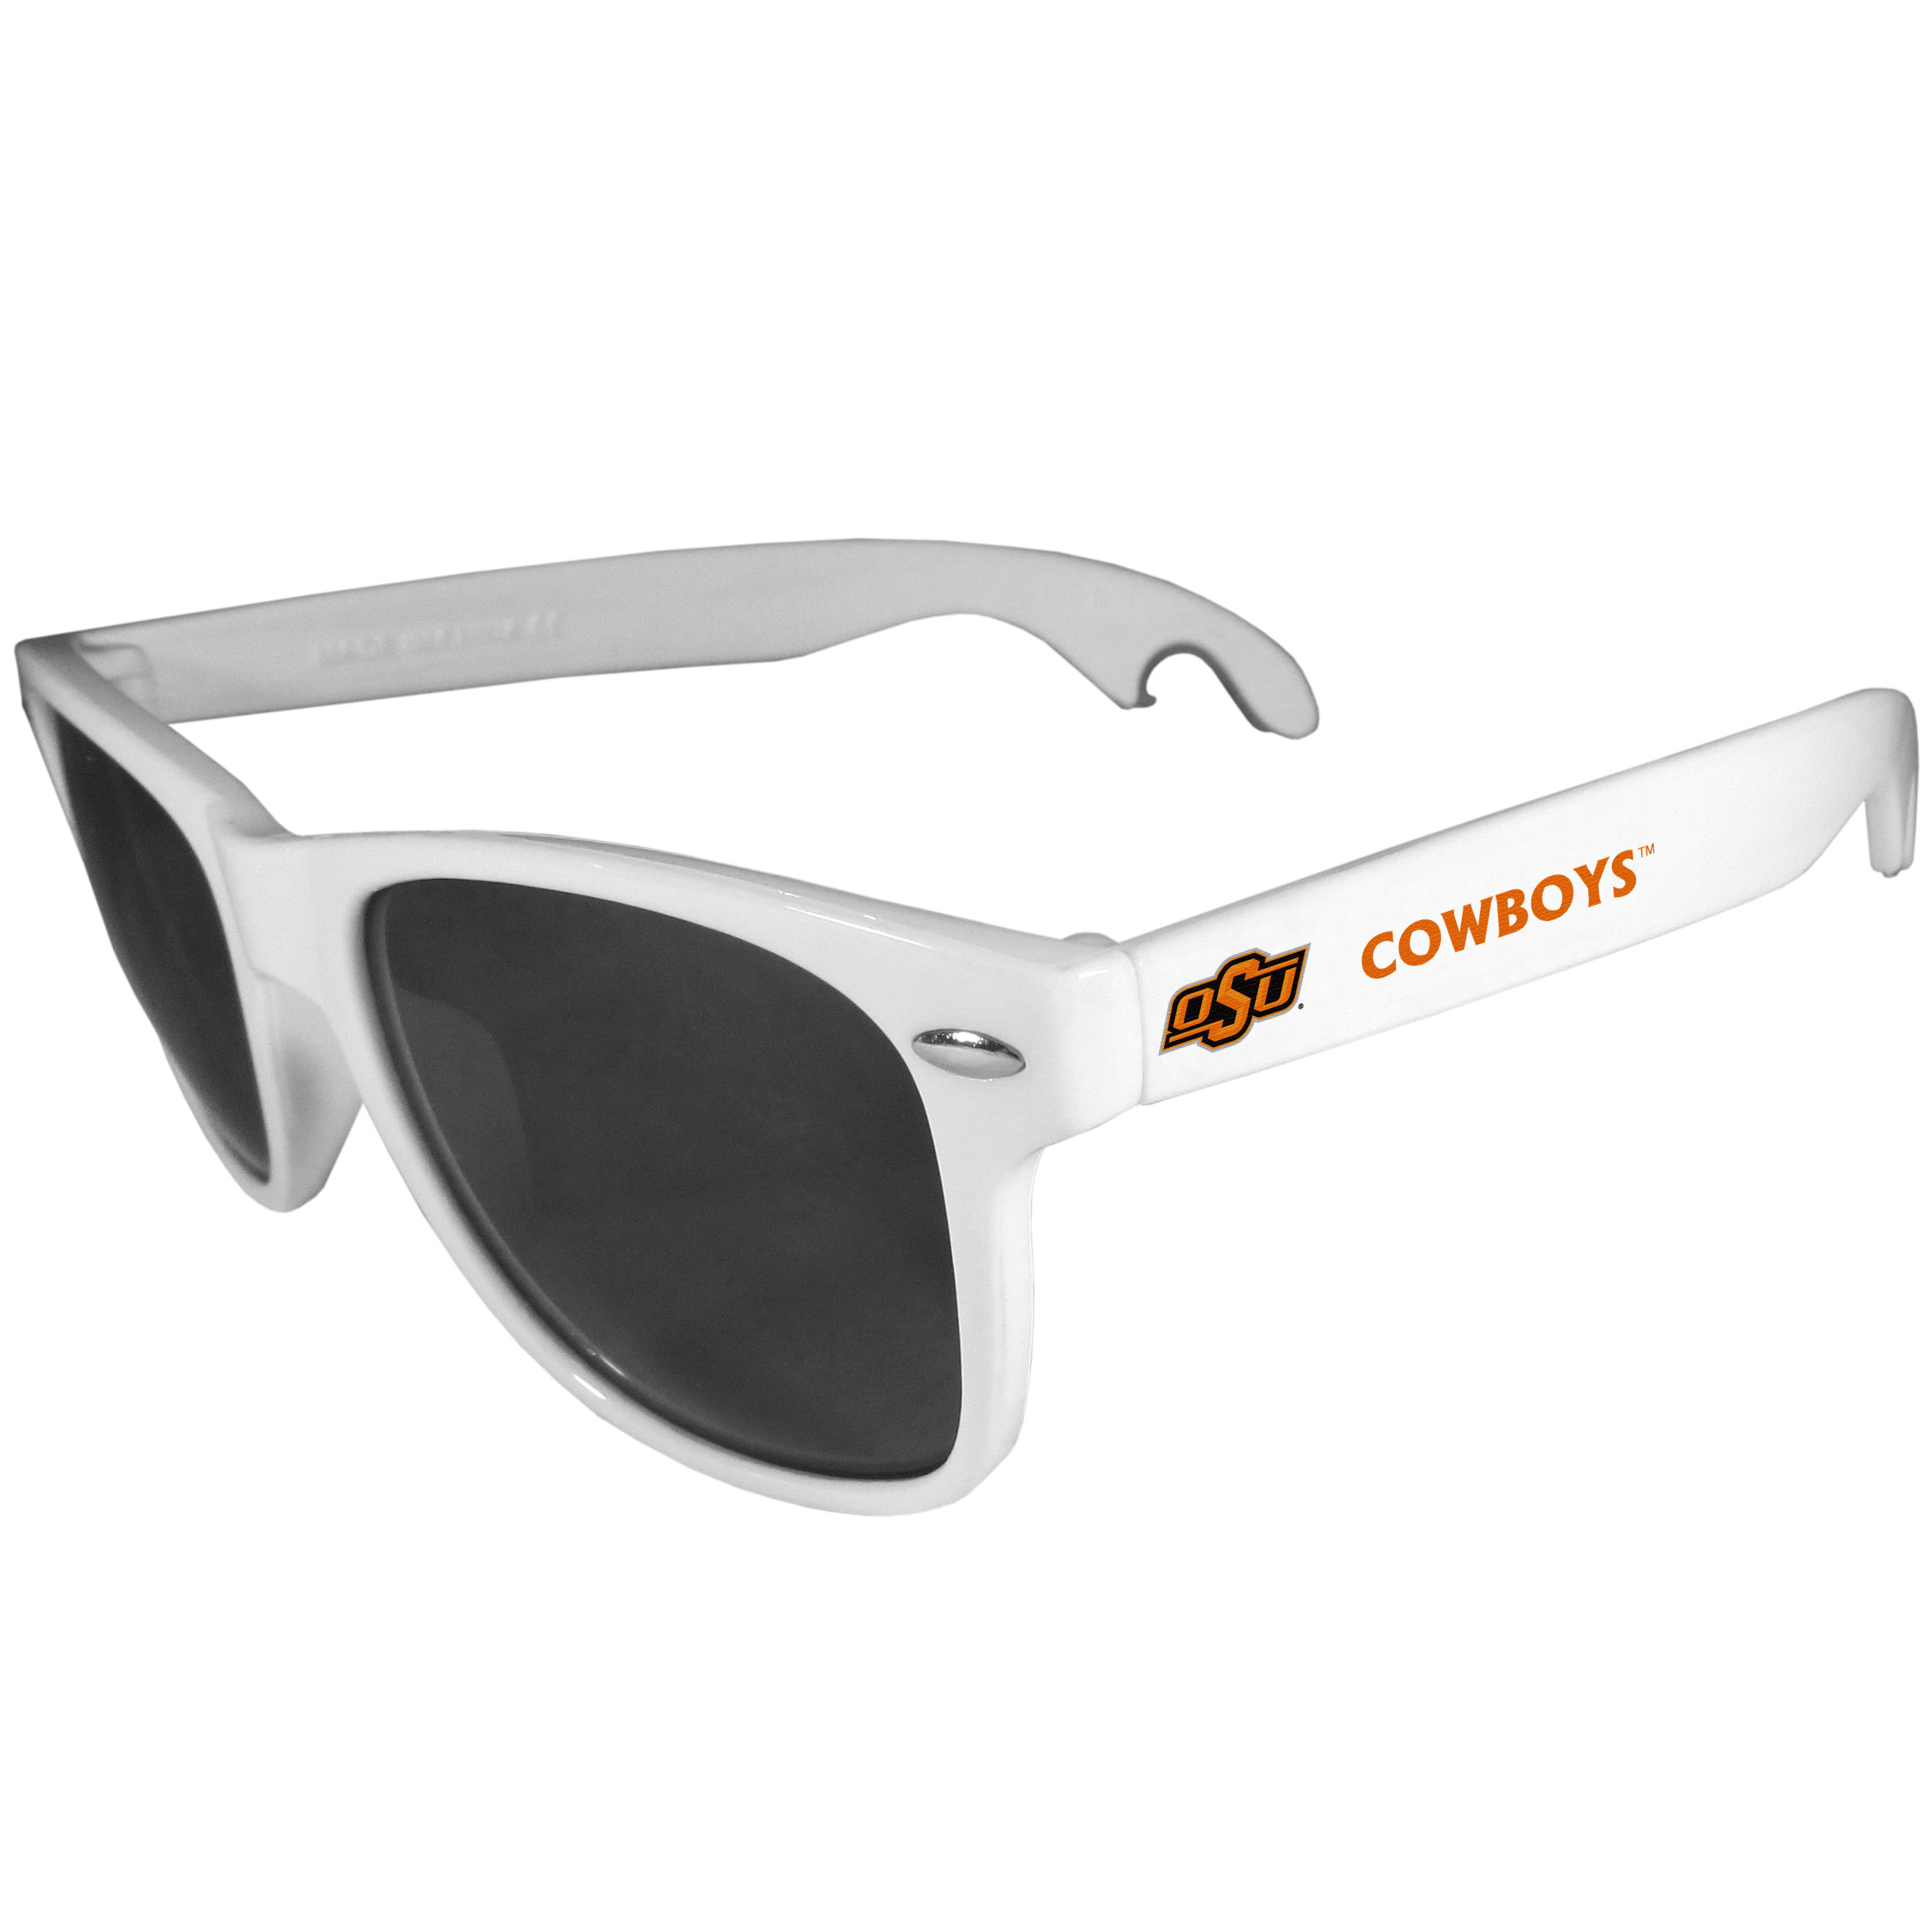 Oklahoma St. Cowboys Beachfarer Bottle Opener Sunglasses, White - Seriously, these sunglasses open bottles! Keep the party going with these amazing Oklahoma St. Cowboys bottle opener sunglasses. The stylish retro frames feature team designs on the arms and functional bottle openers on the end of the arms. Whether you are at the beach or having a backyard BBQ on game day, these shades will keep your eyes protected with 100% UVA/UVB protection and keep you hydrated with the handy bottle opener arms.